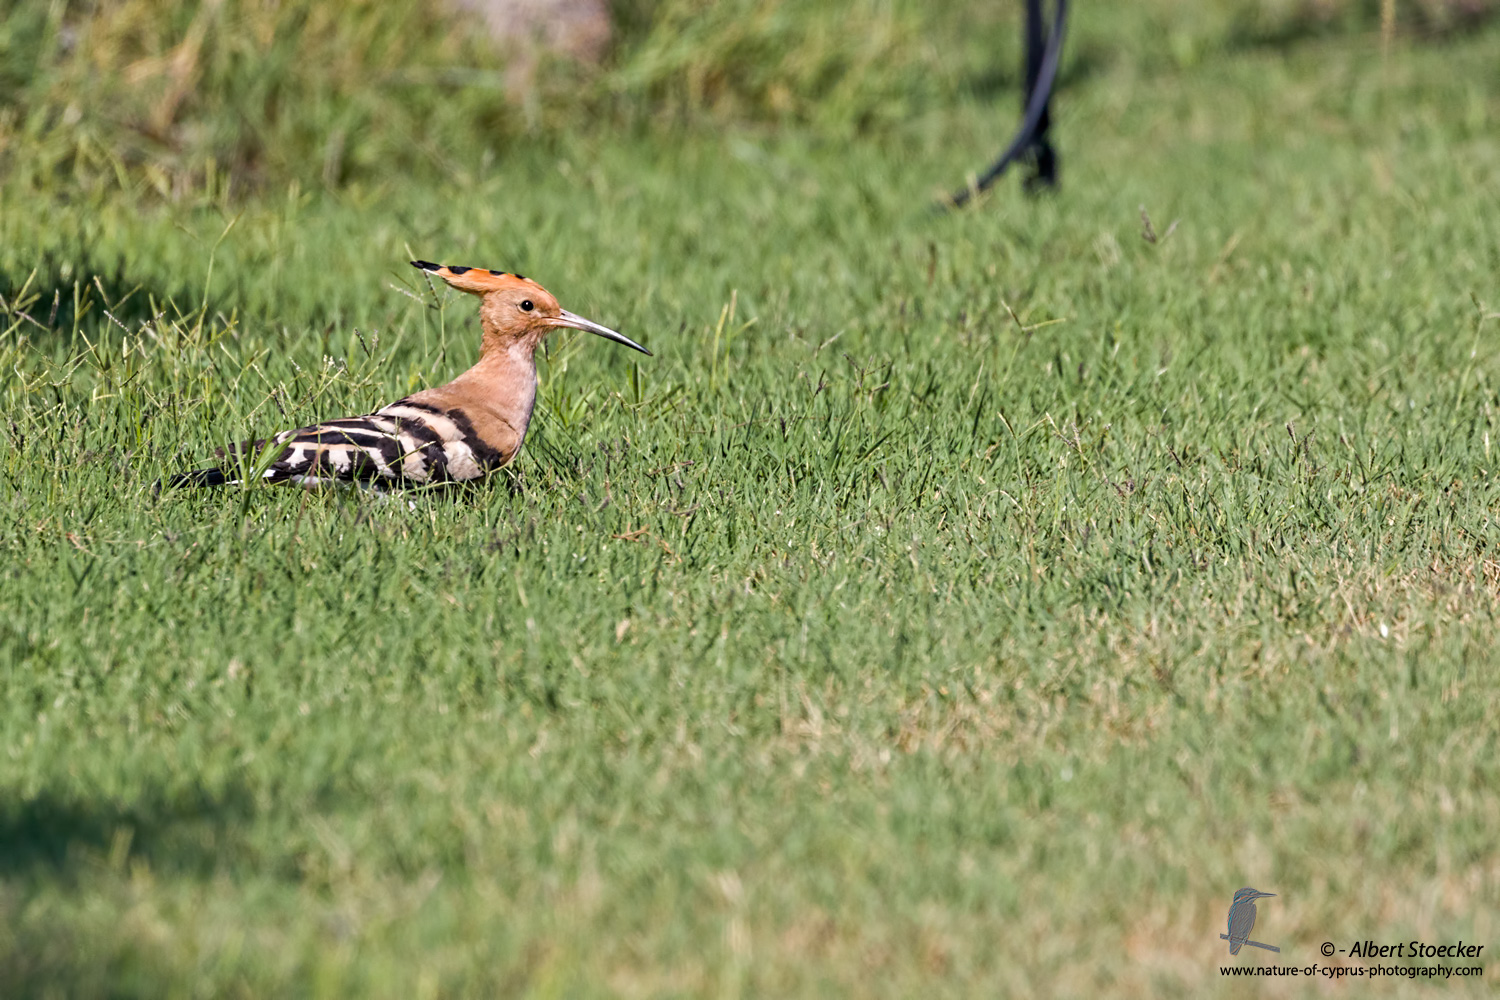 Wiedehopf, Hoopoe, Upupa epops, Cyprus, Akrotiri - Agios Georgios Church, September 2017